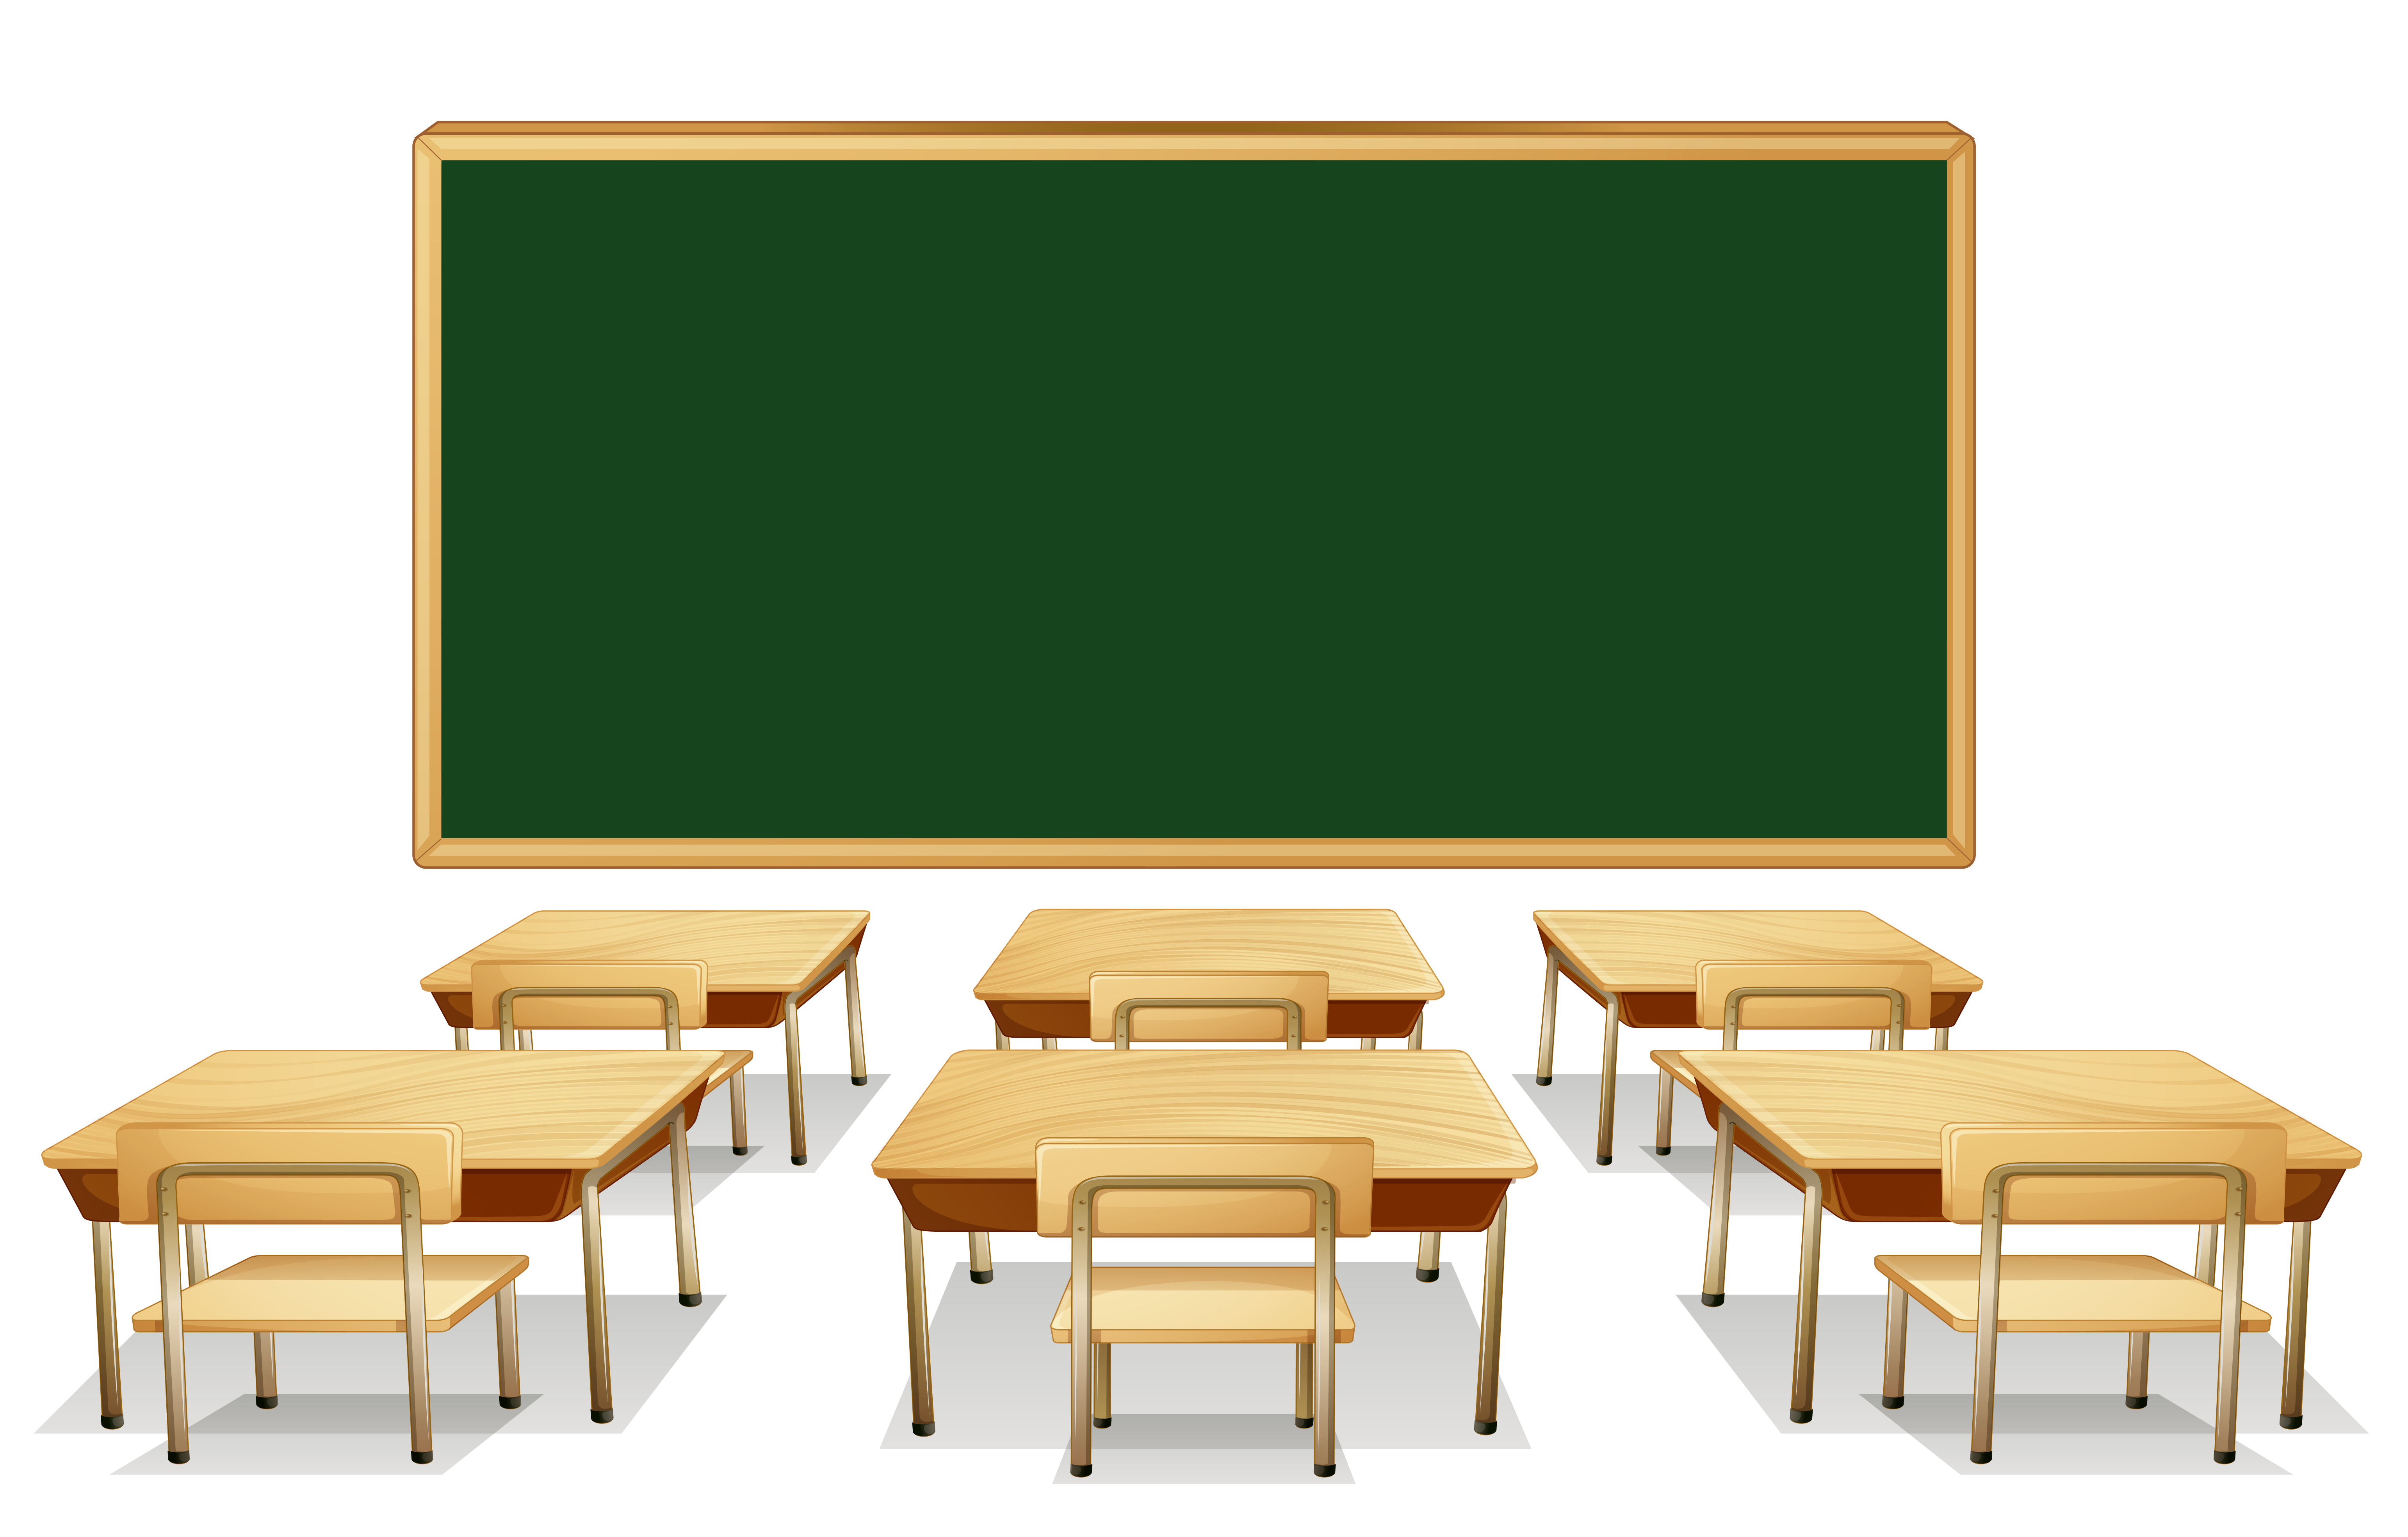 Classroom with green.